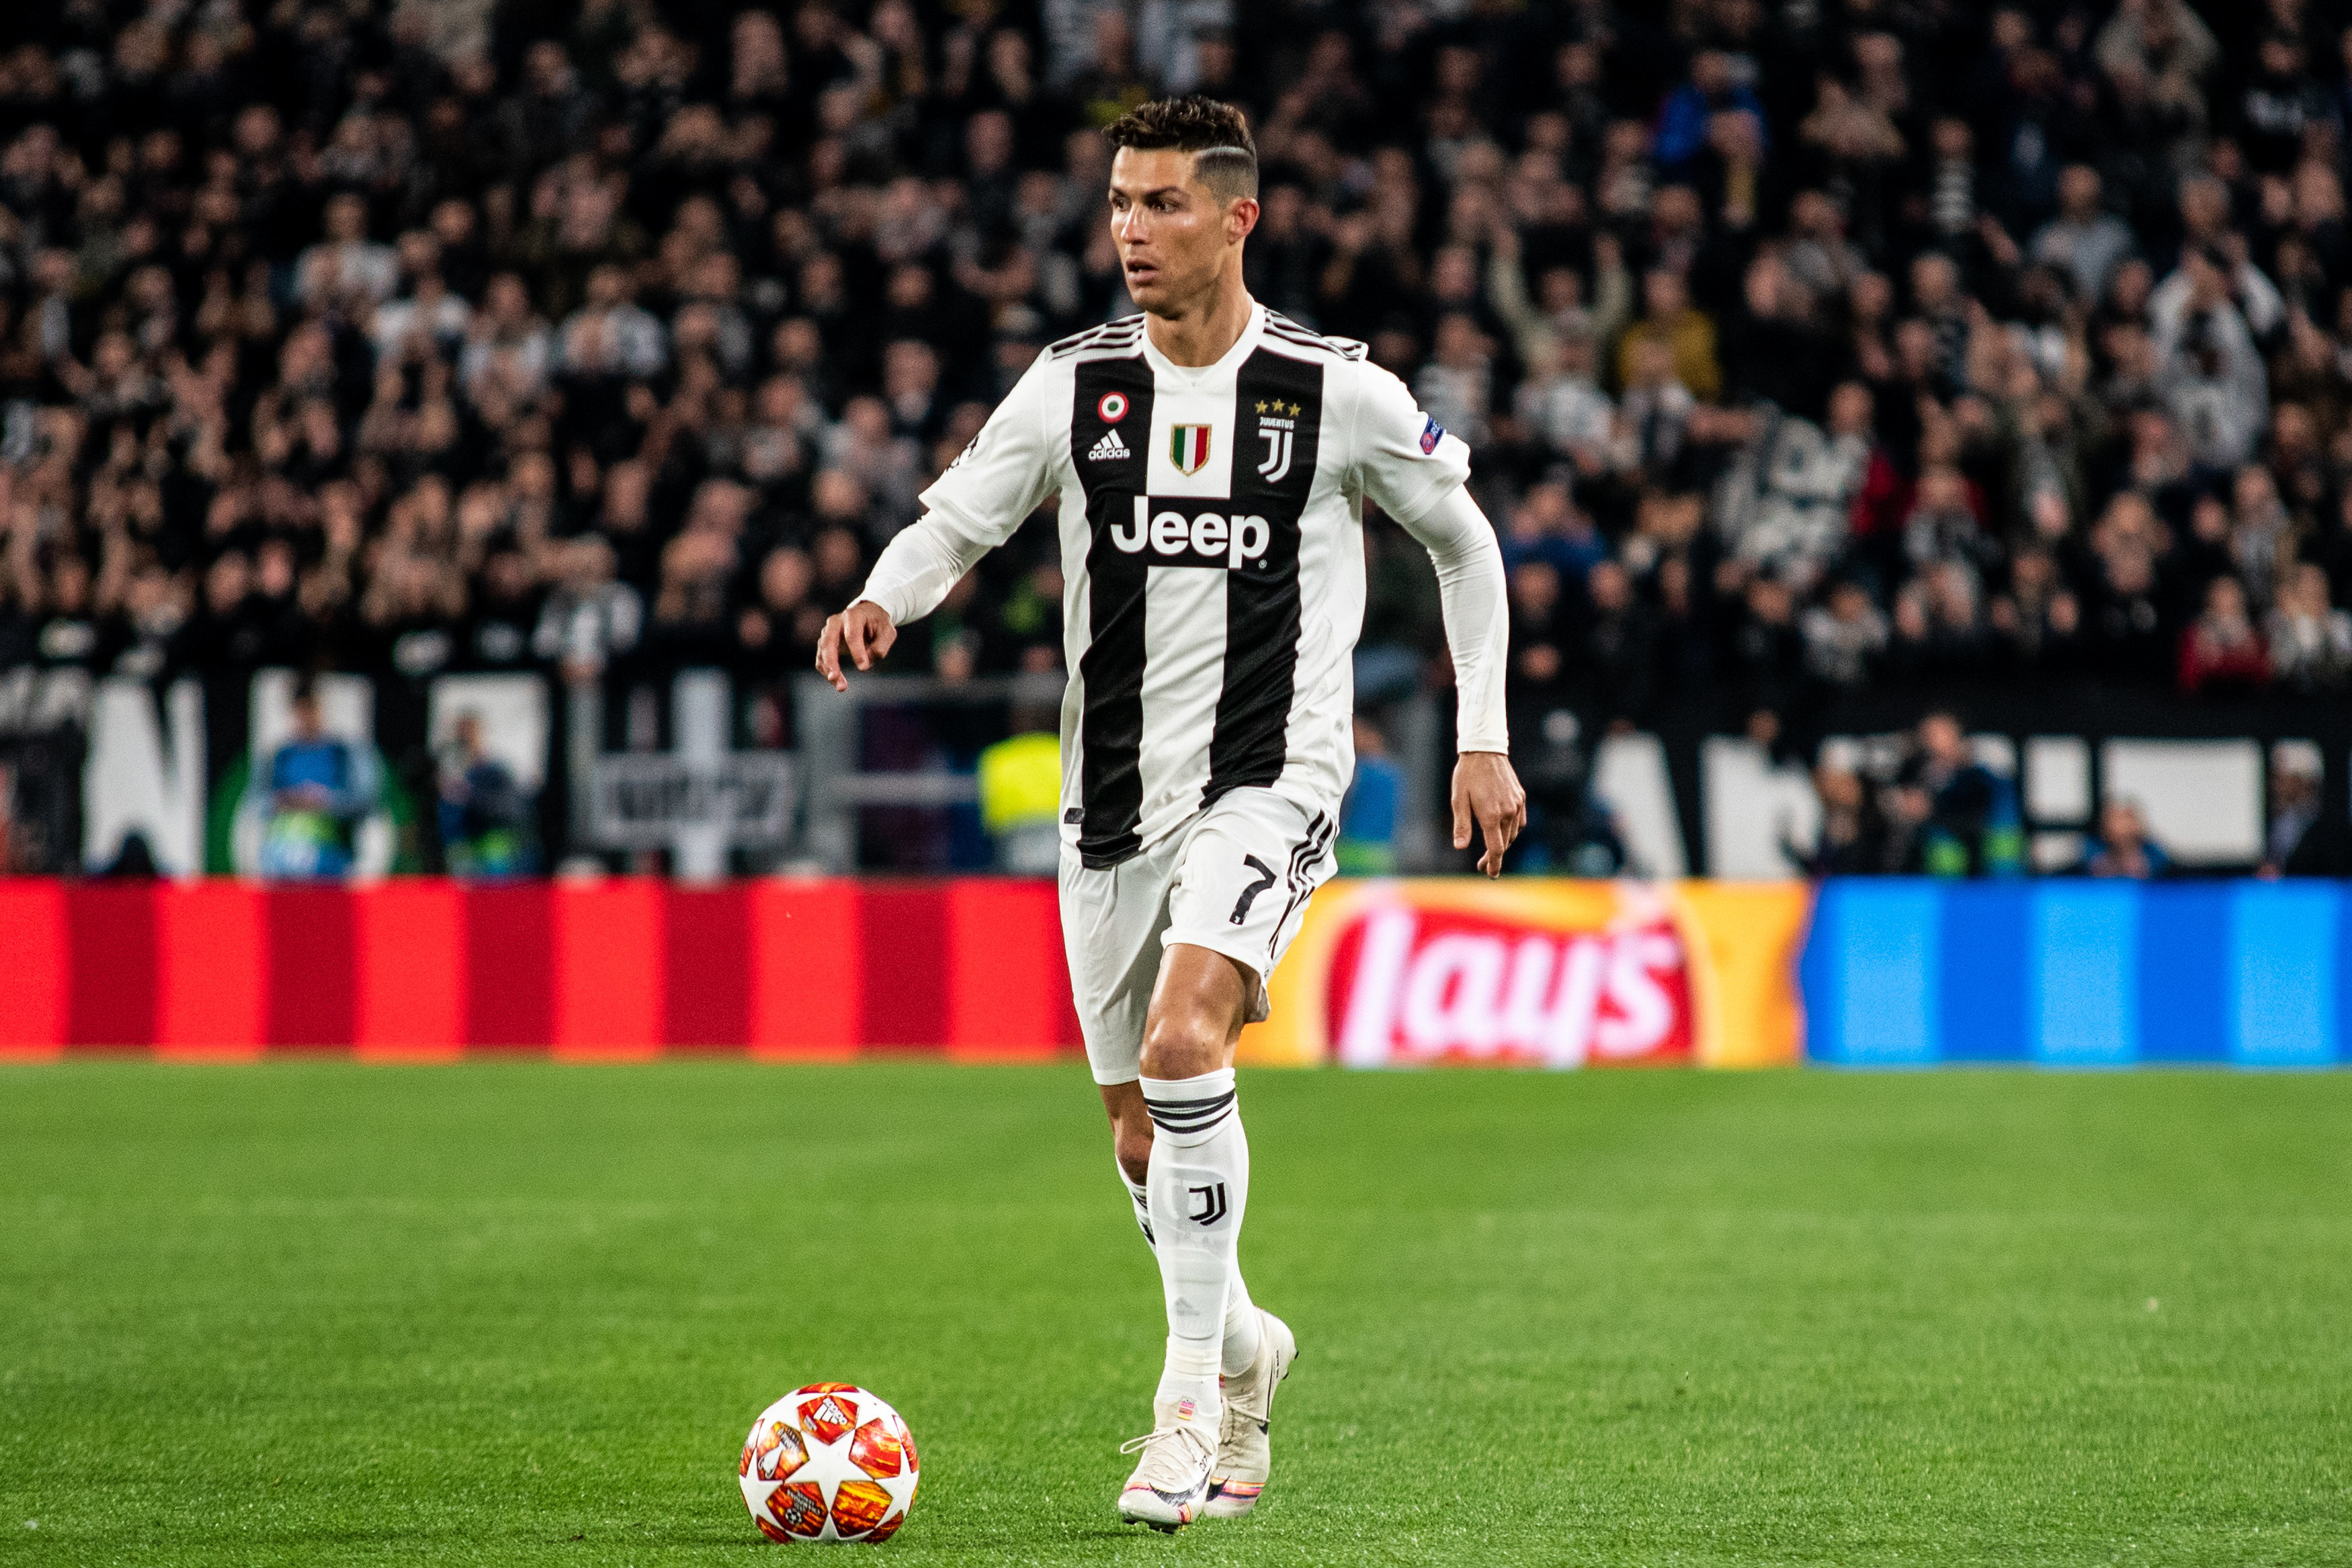 Cristiano Ronaldo says he is proud after making history with Juventus